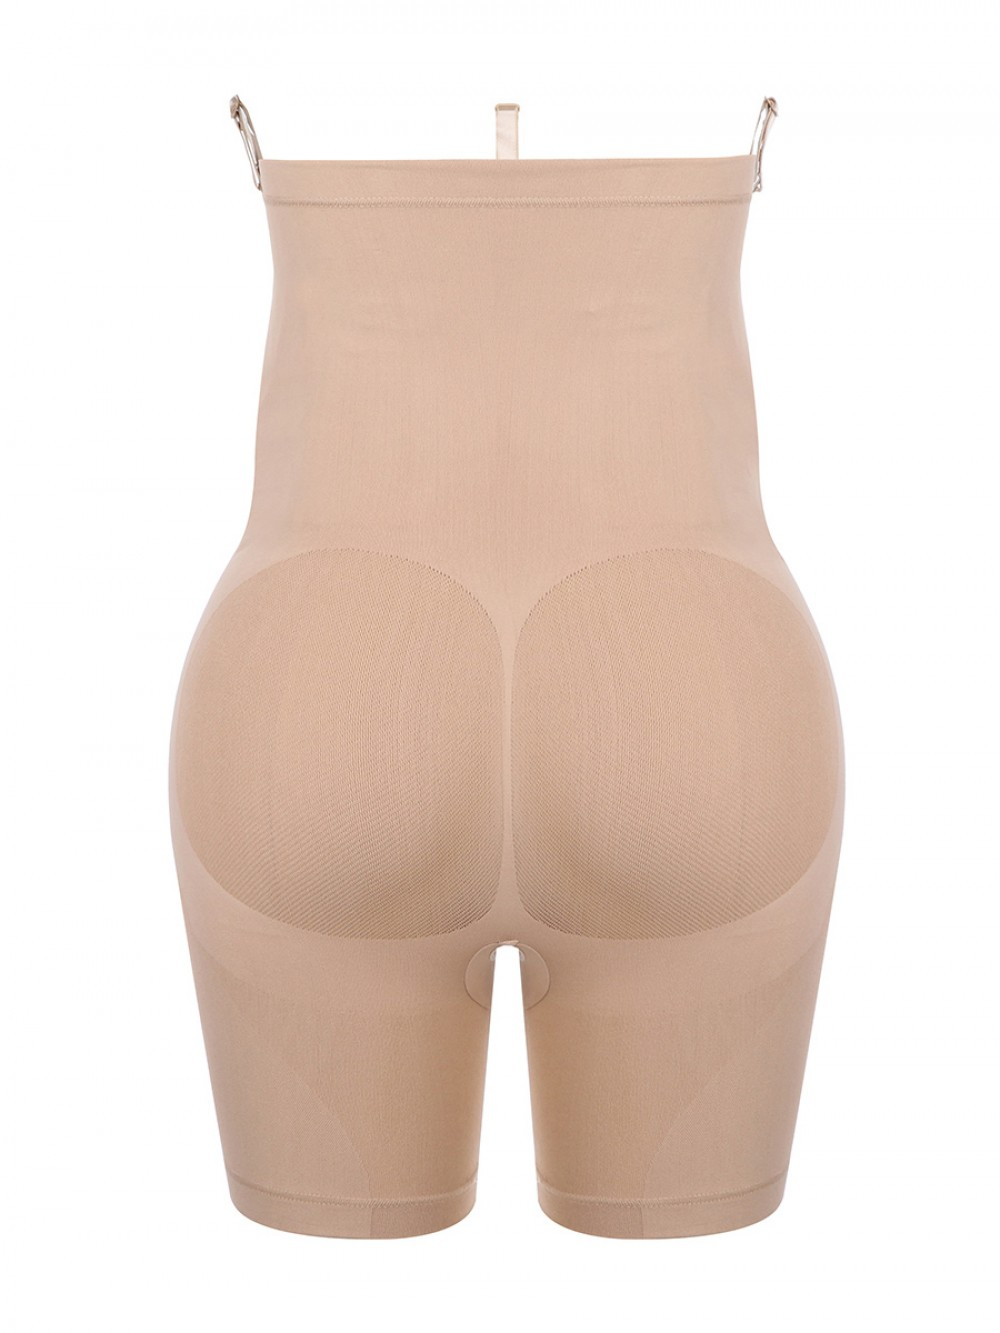 Abdominal Control Skin Color Belly Support Shaper Buckle Seamless